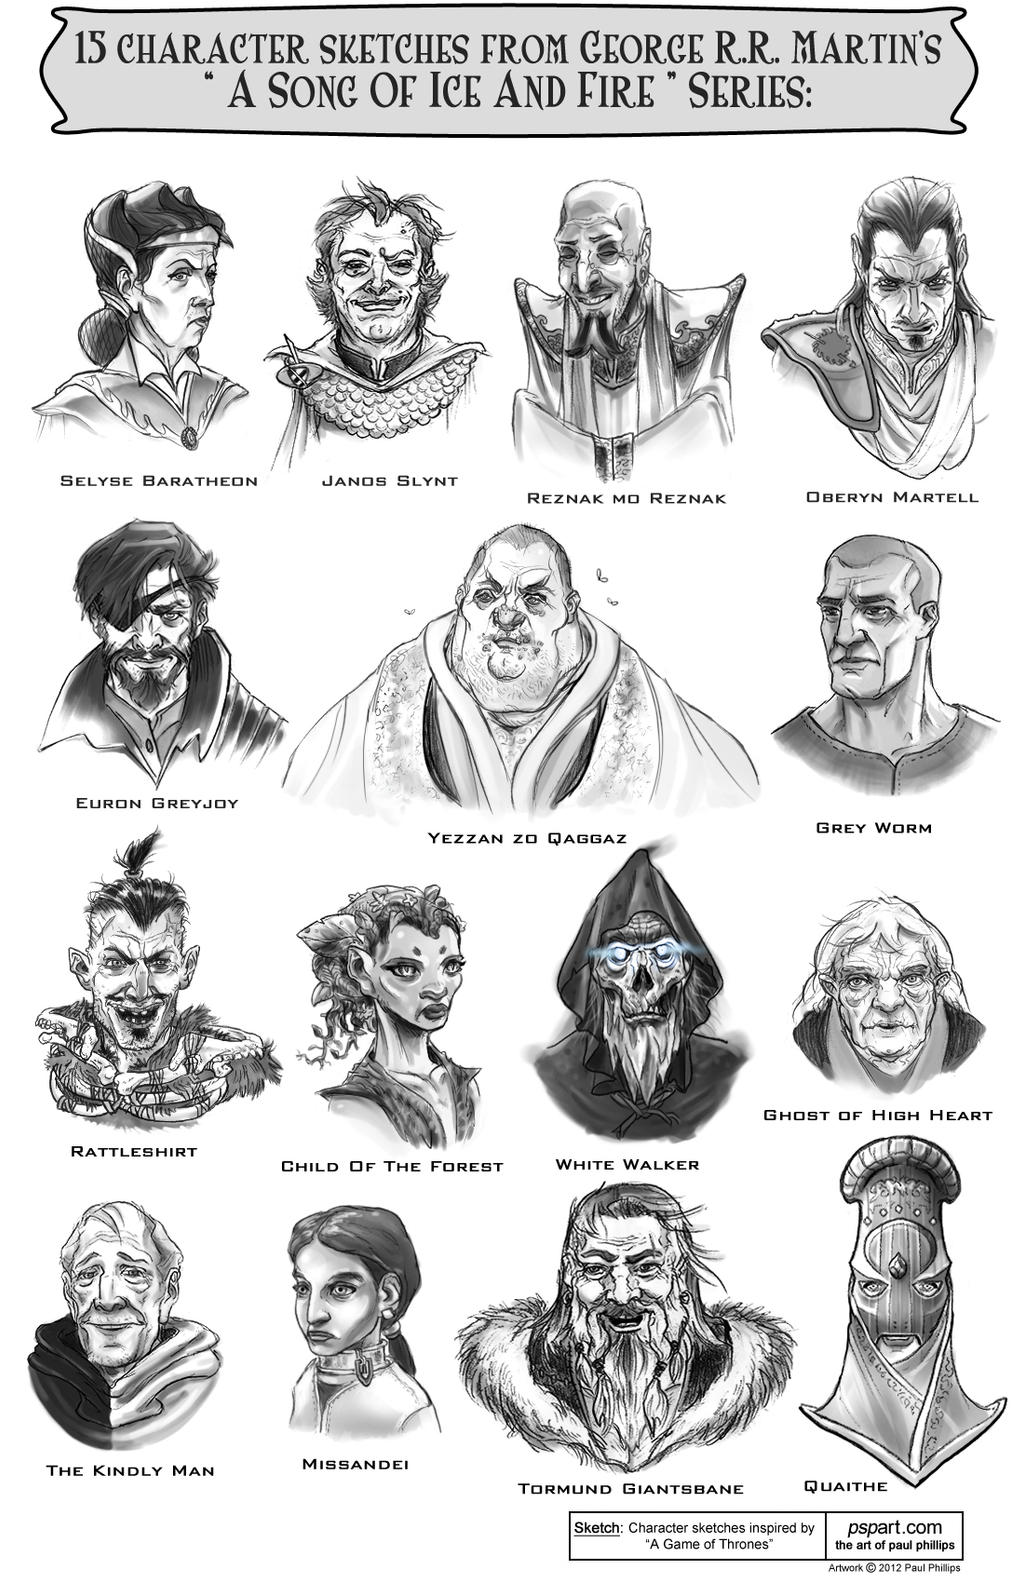 ImageSpace - A Song Of Ice And Fire Characters Art